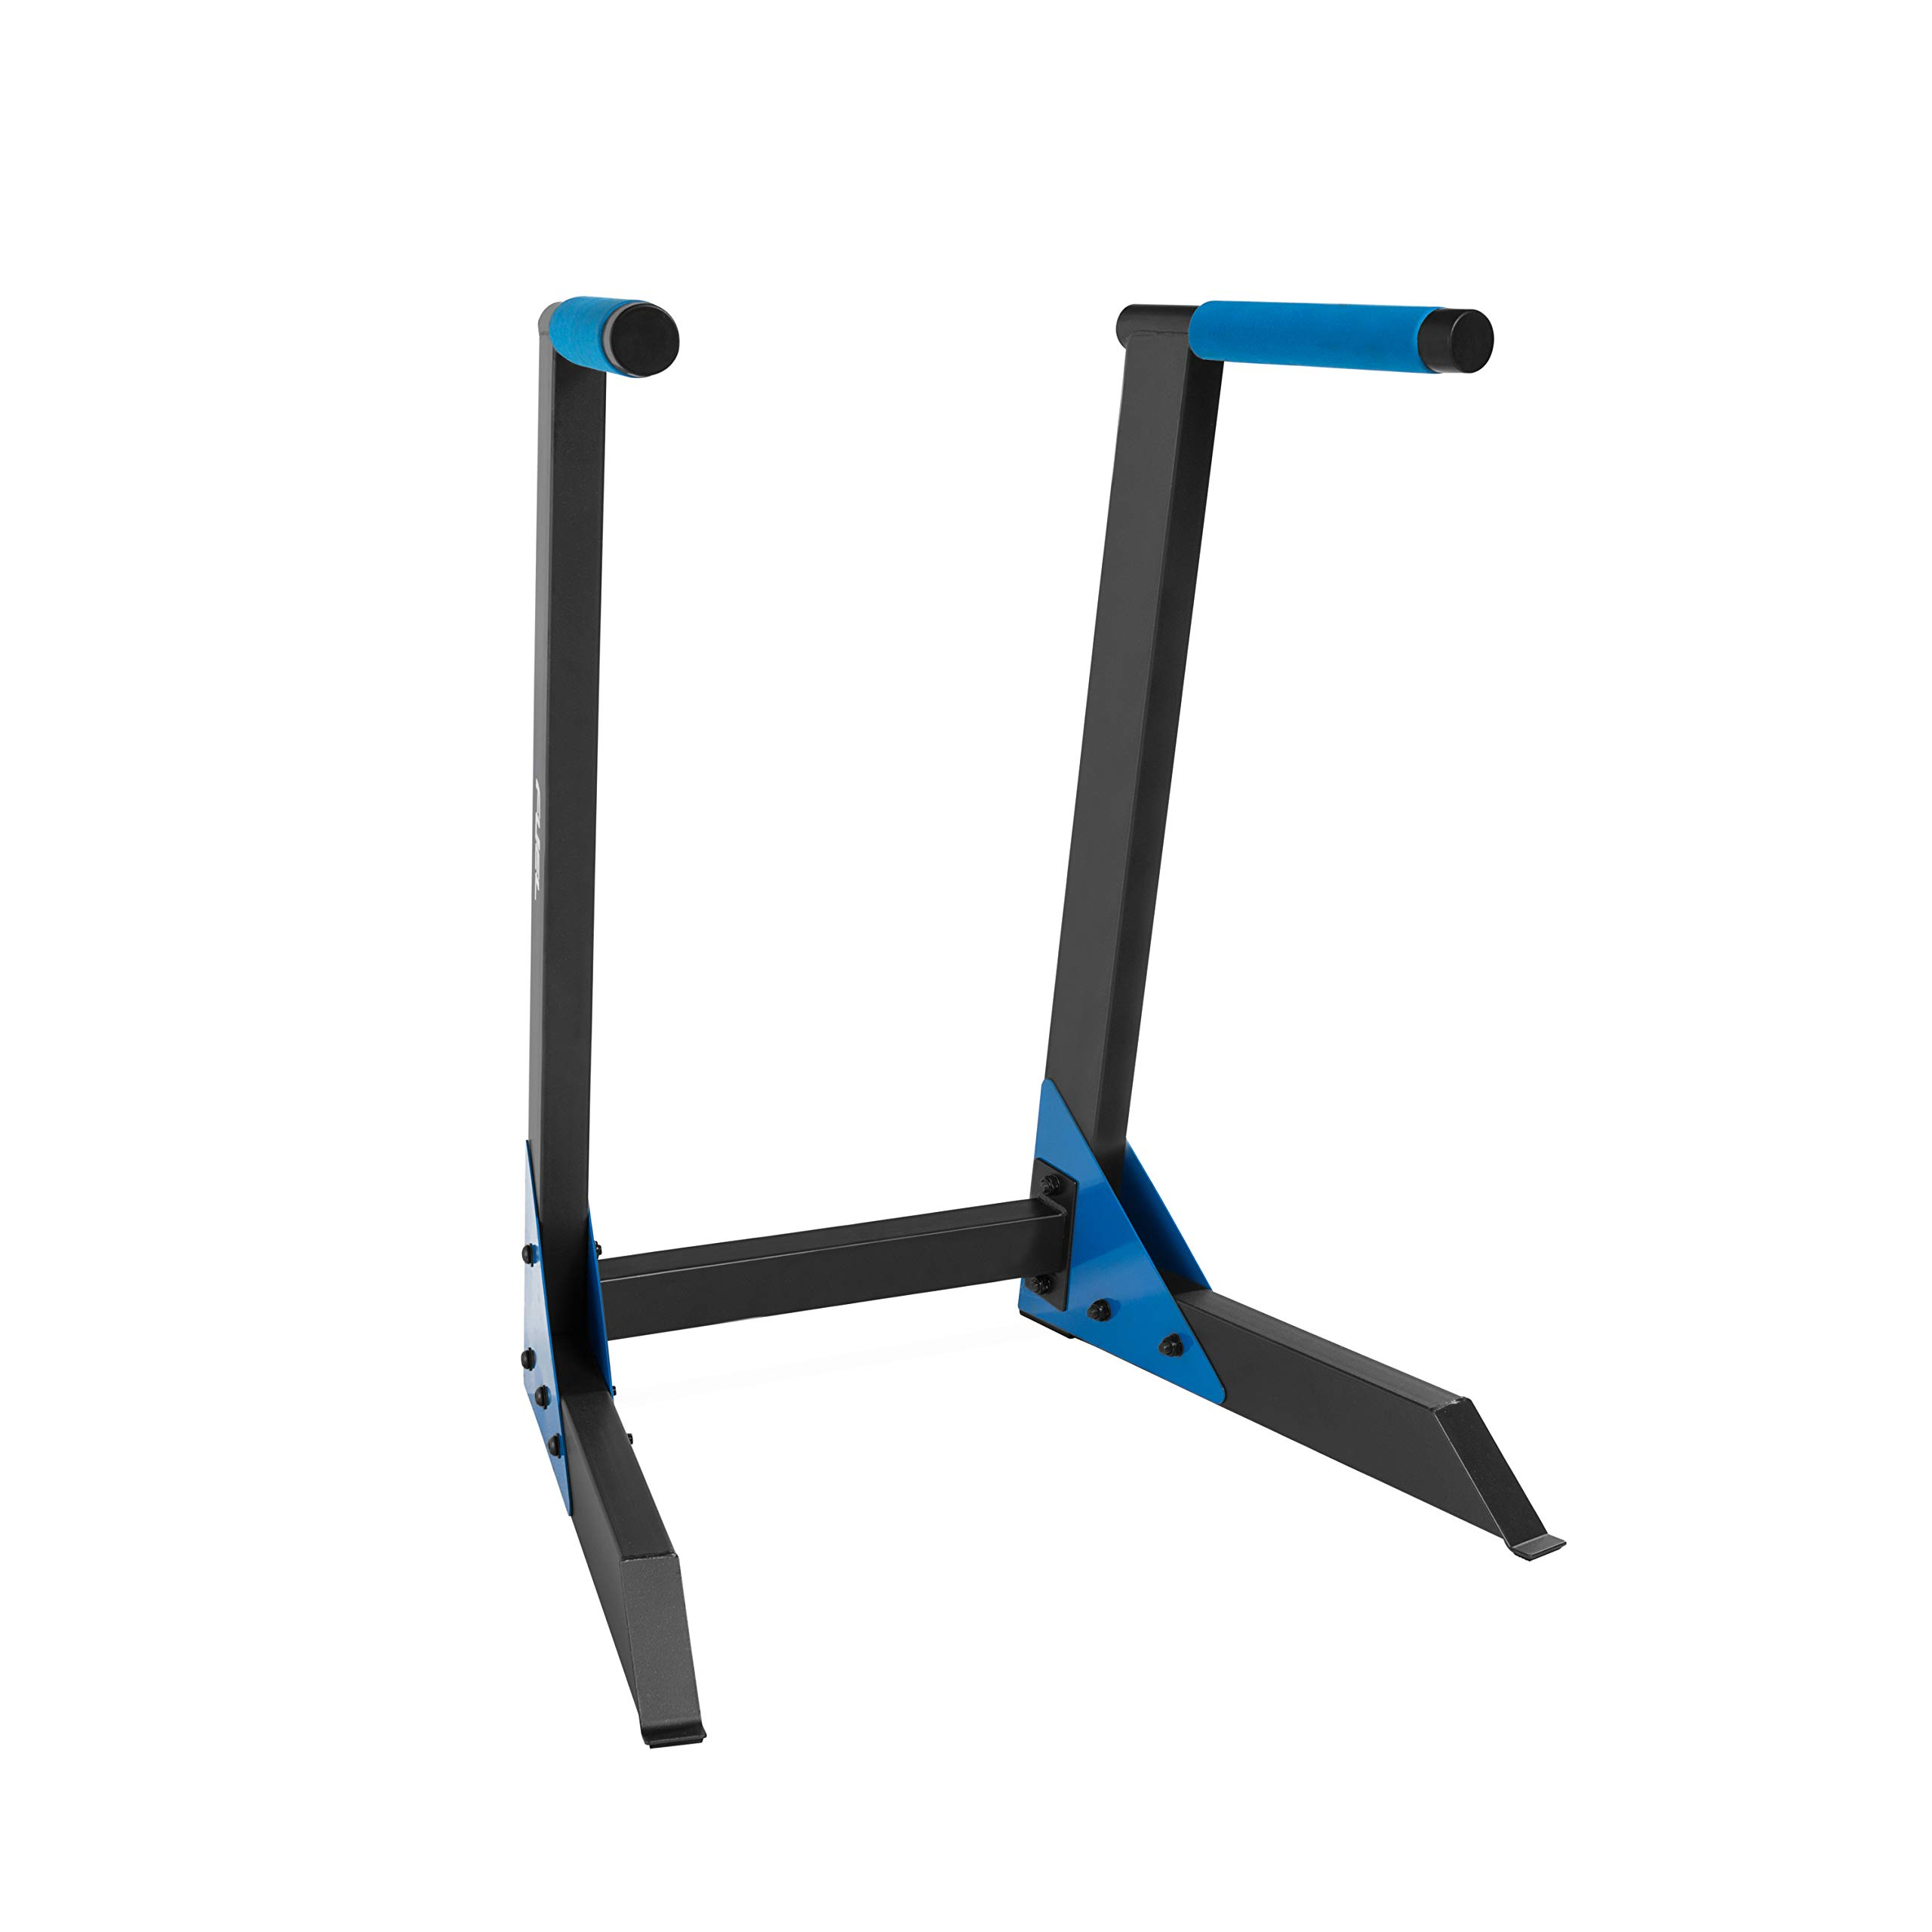 Fuel Pureformance Deluxe Bodyweight Training Dip Station by Fuel Pureformance (Image #4)